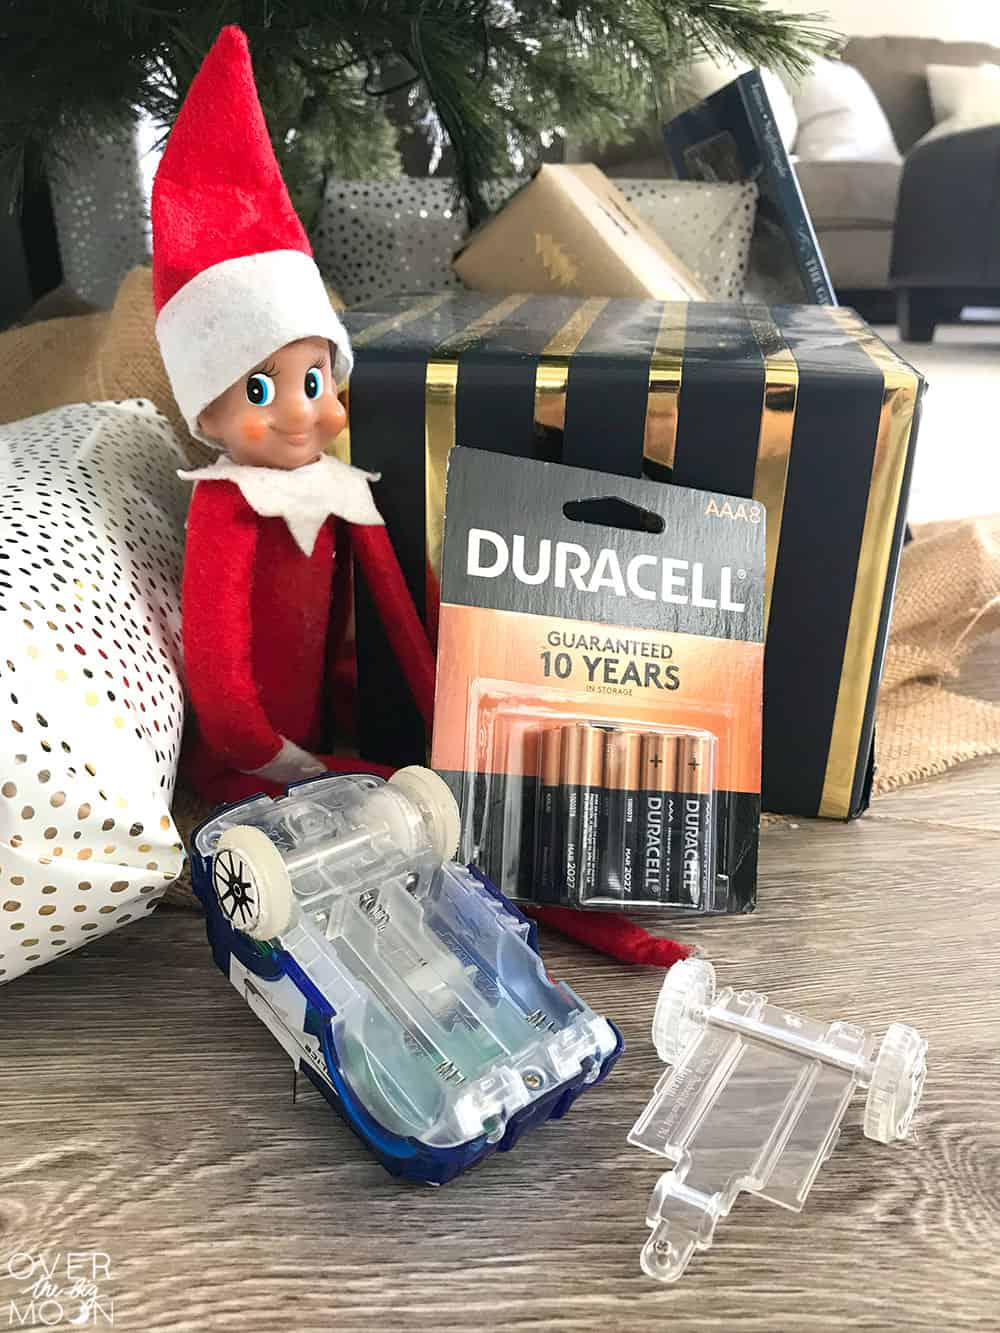 The Helpful Elf is too much fun and helps bring the spirit of service into your home! From overthebigmoon.com!